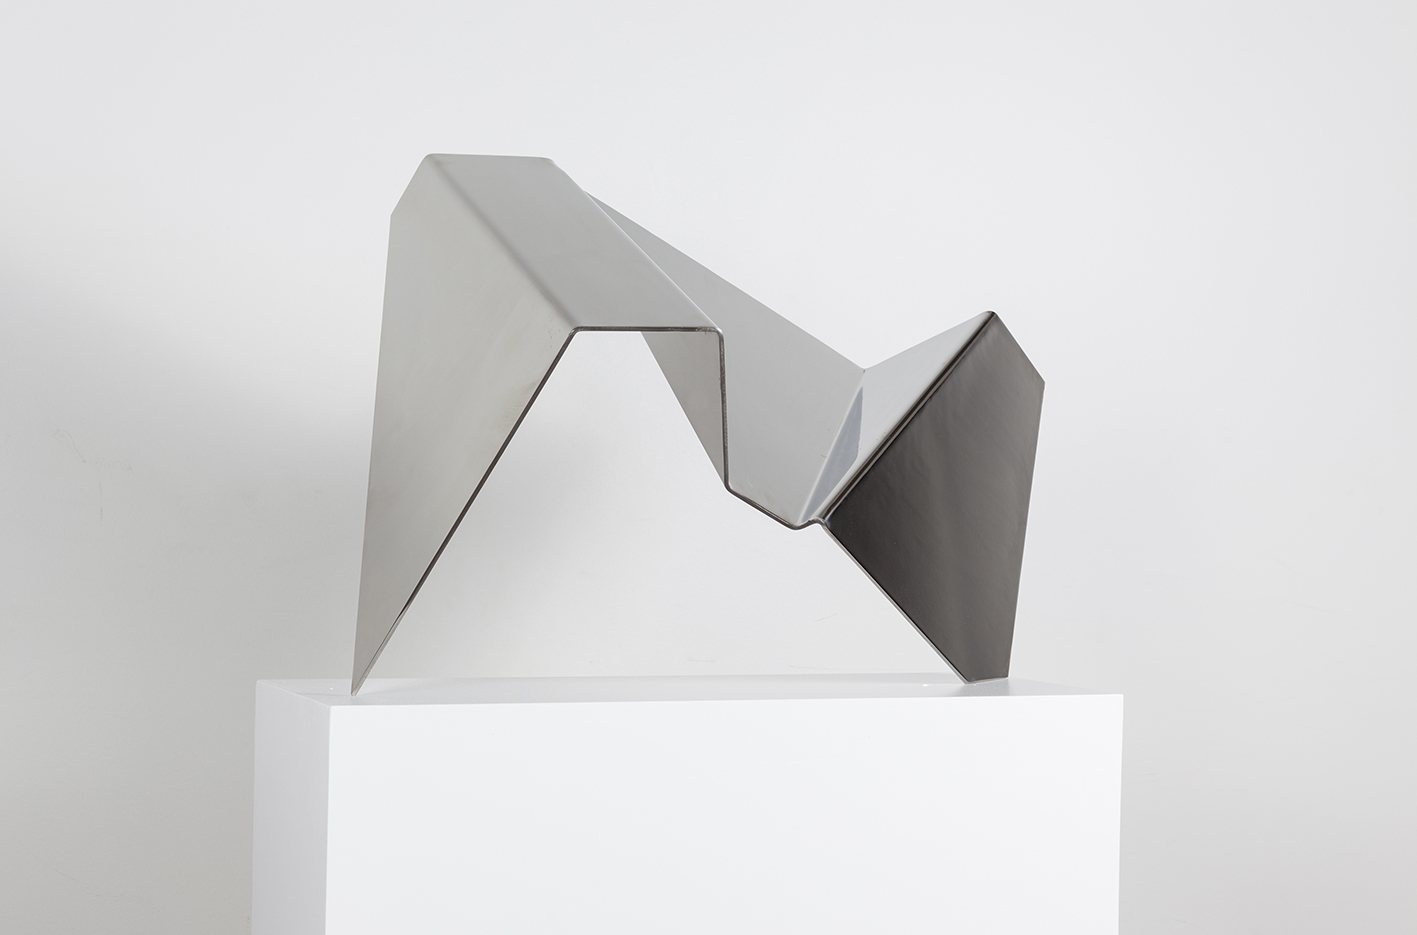 Photograph of abstract sculpture by artist Alejandro Urri